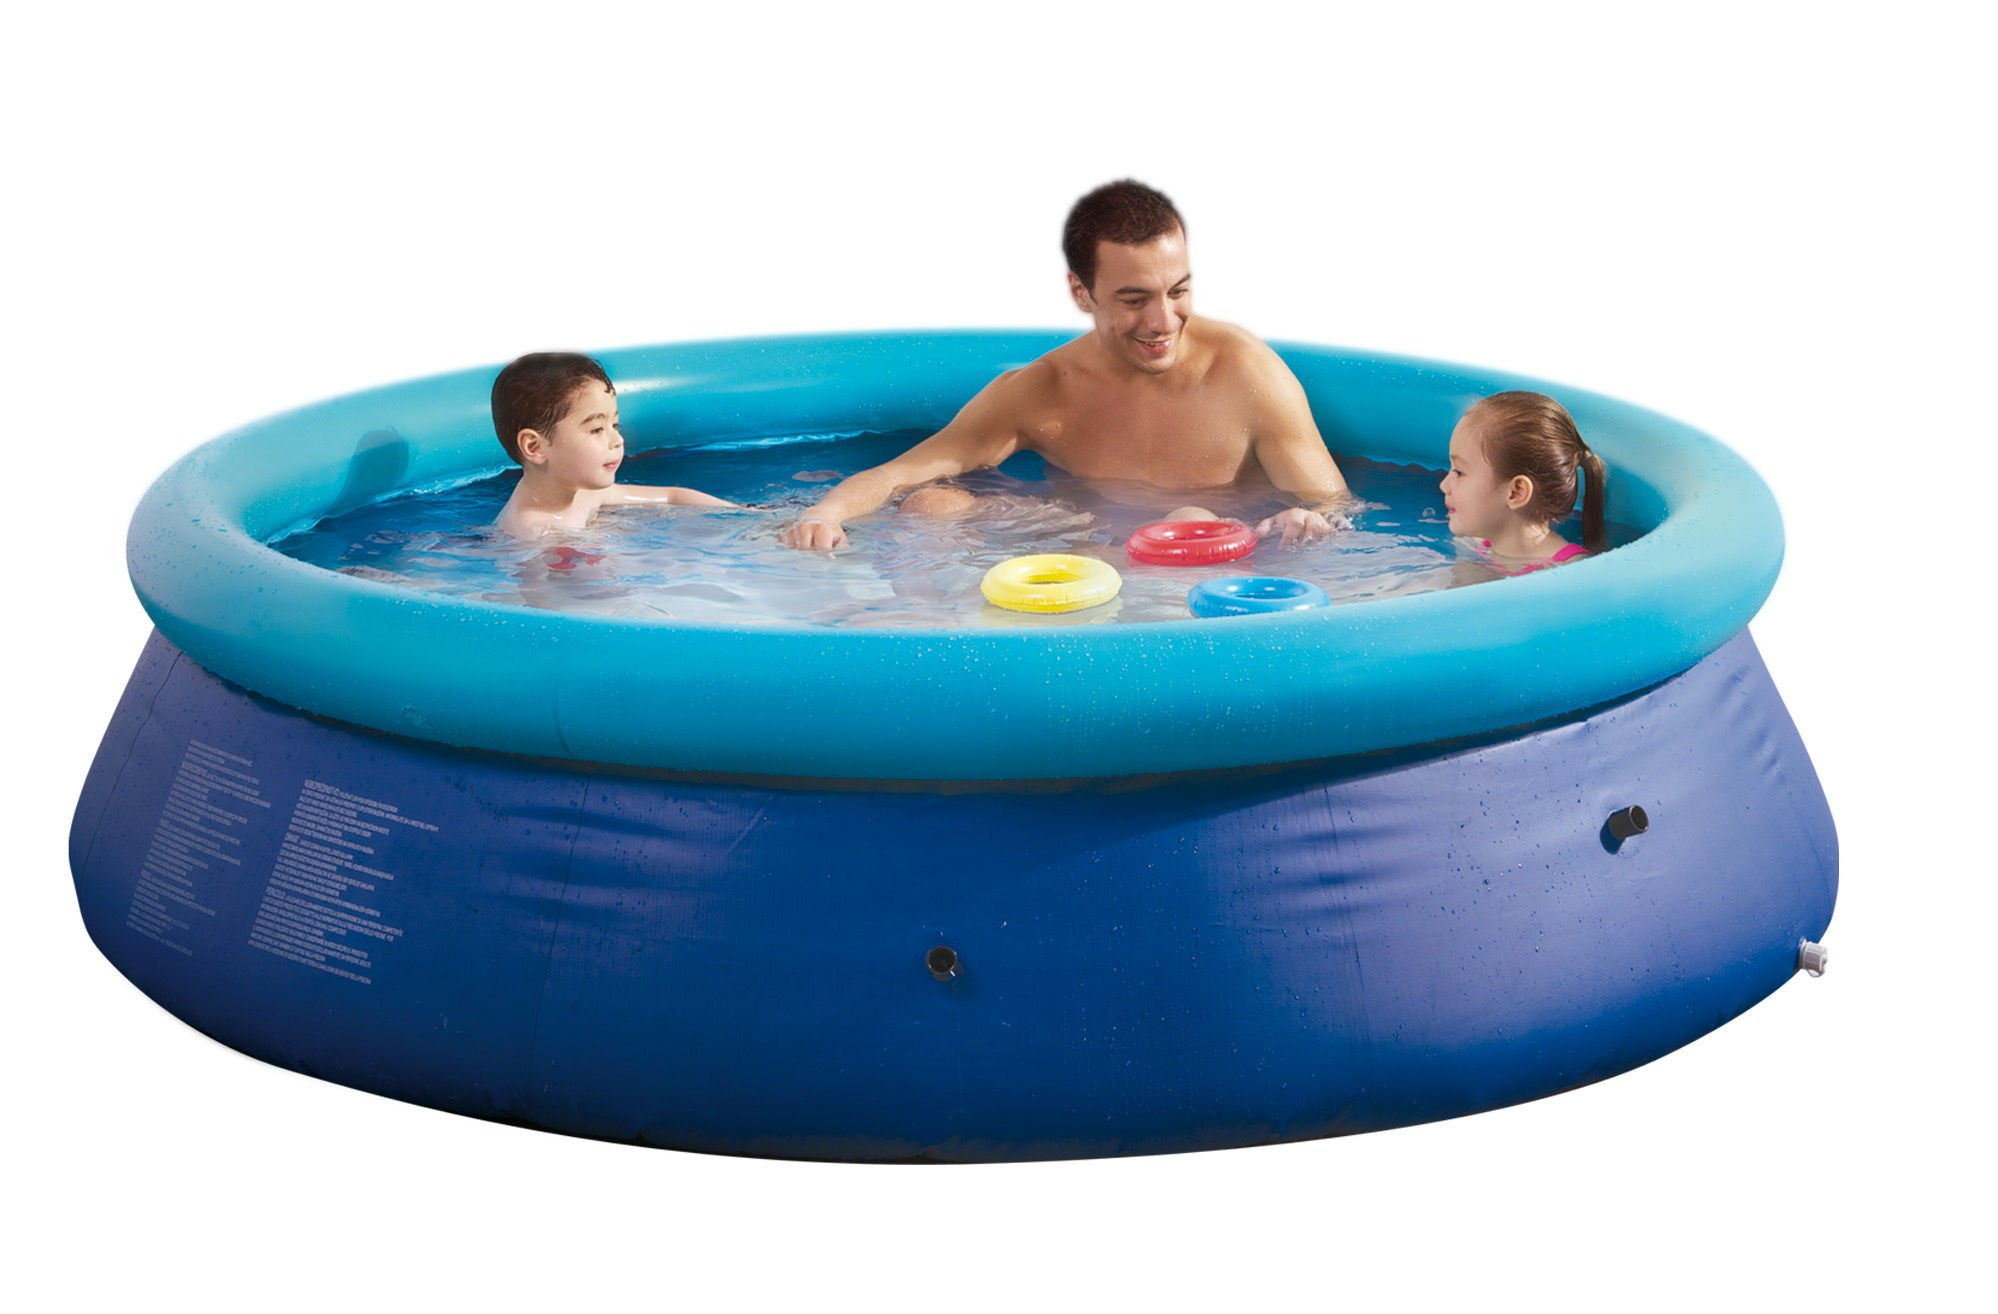 Bache piscine gonflable carrefour - Matela gonflable carrefour ...